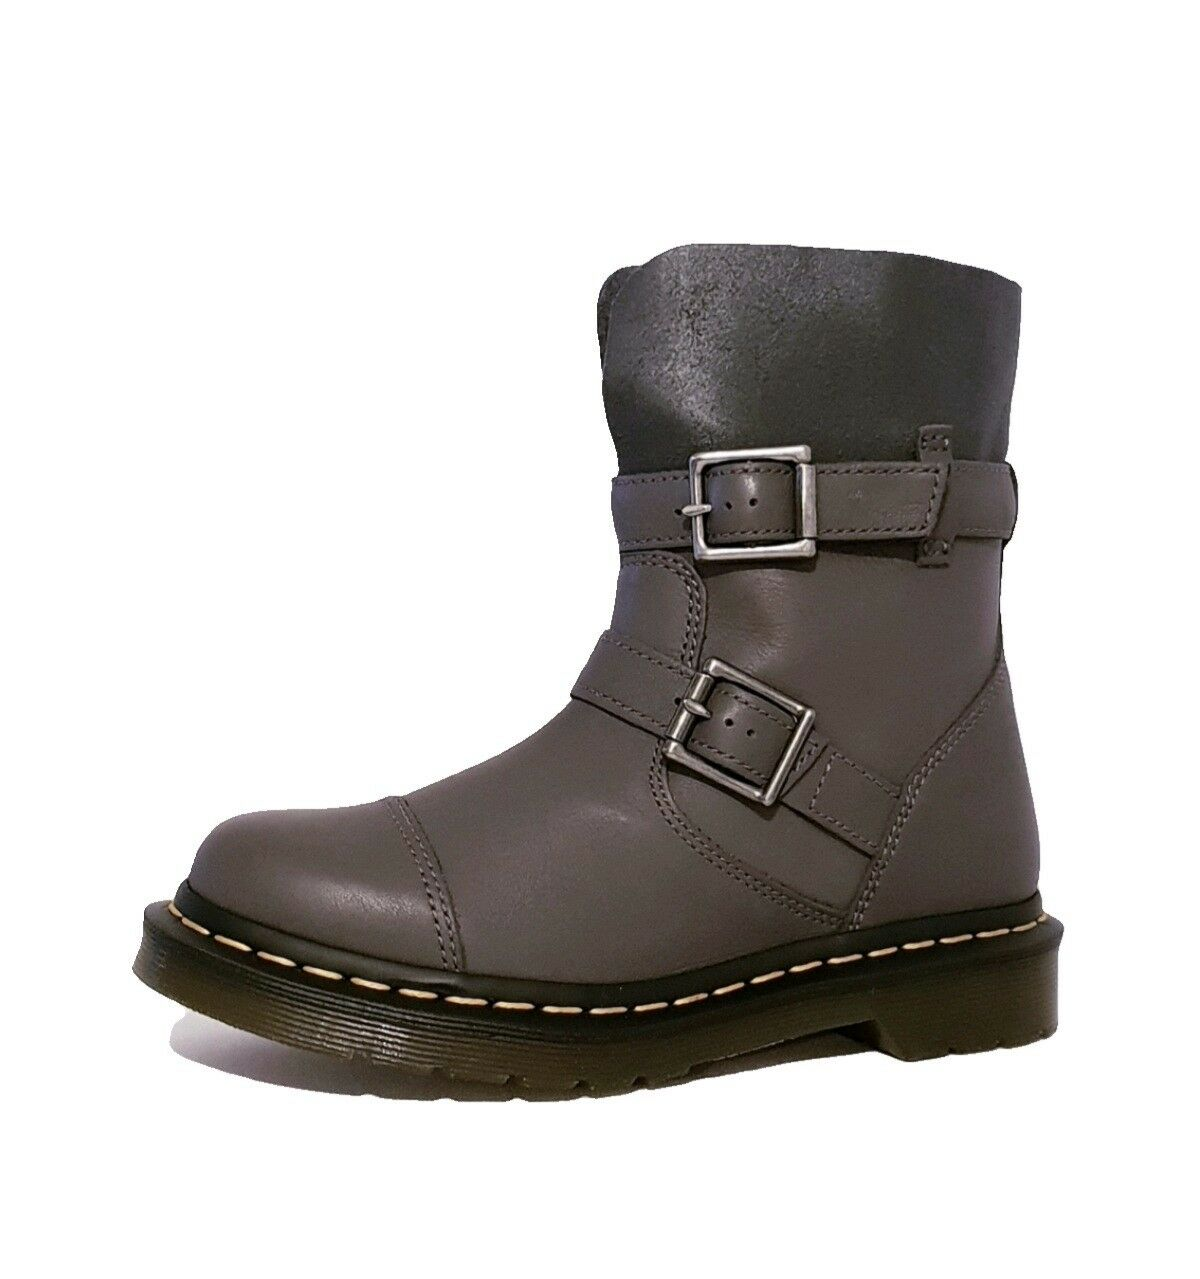 DR MARTENS KRISTY LEAD GREY GENUINE LEATHER ANKLE BOOTS LADIES